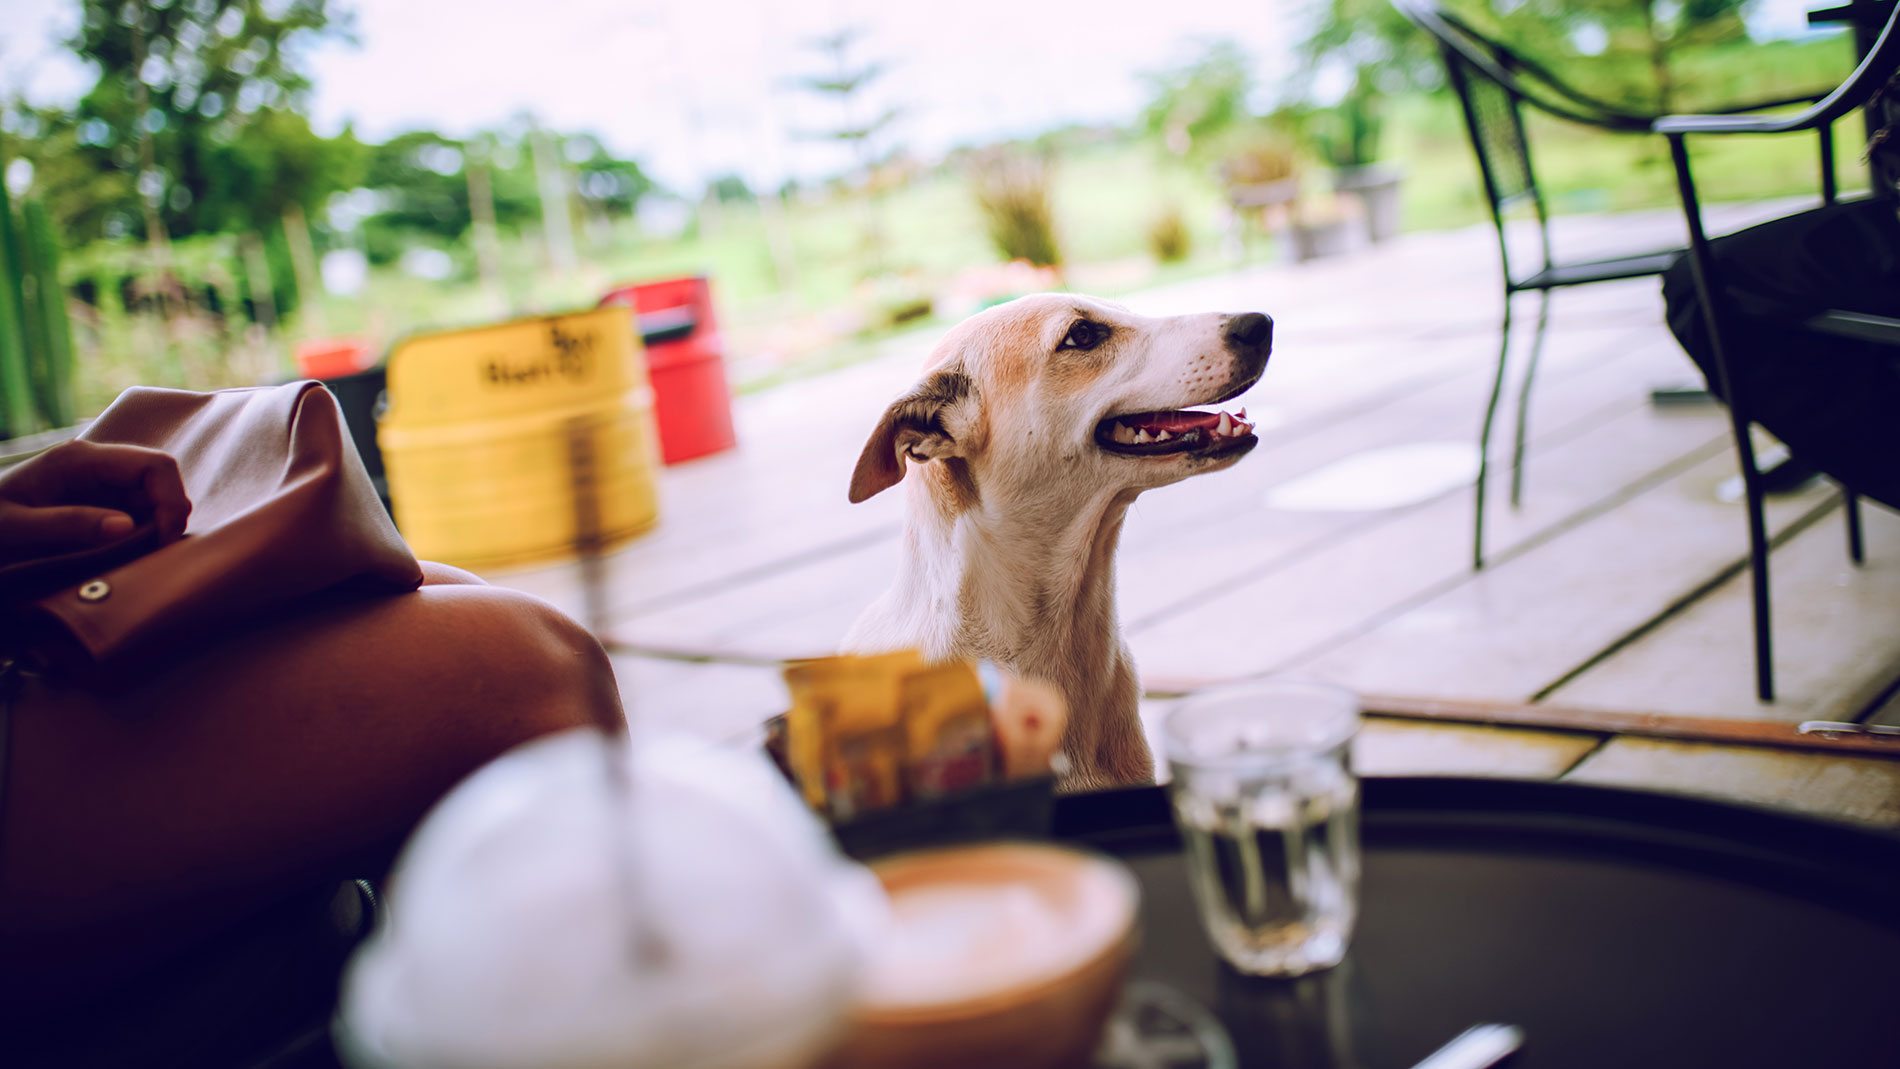 dog-friendly restaurants and bars in st. louis